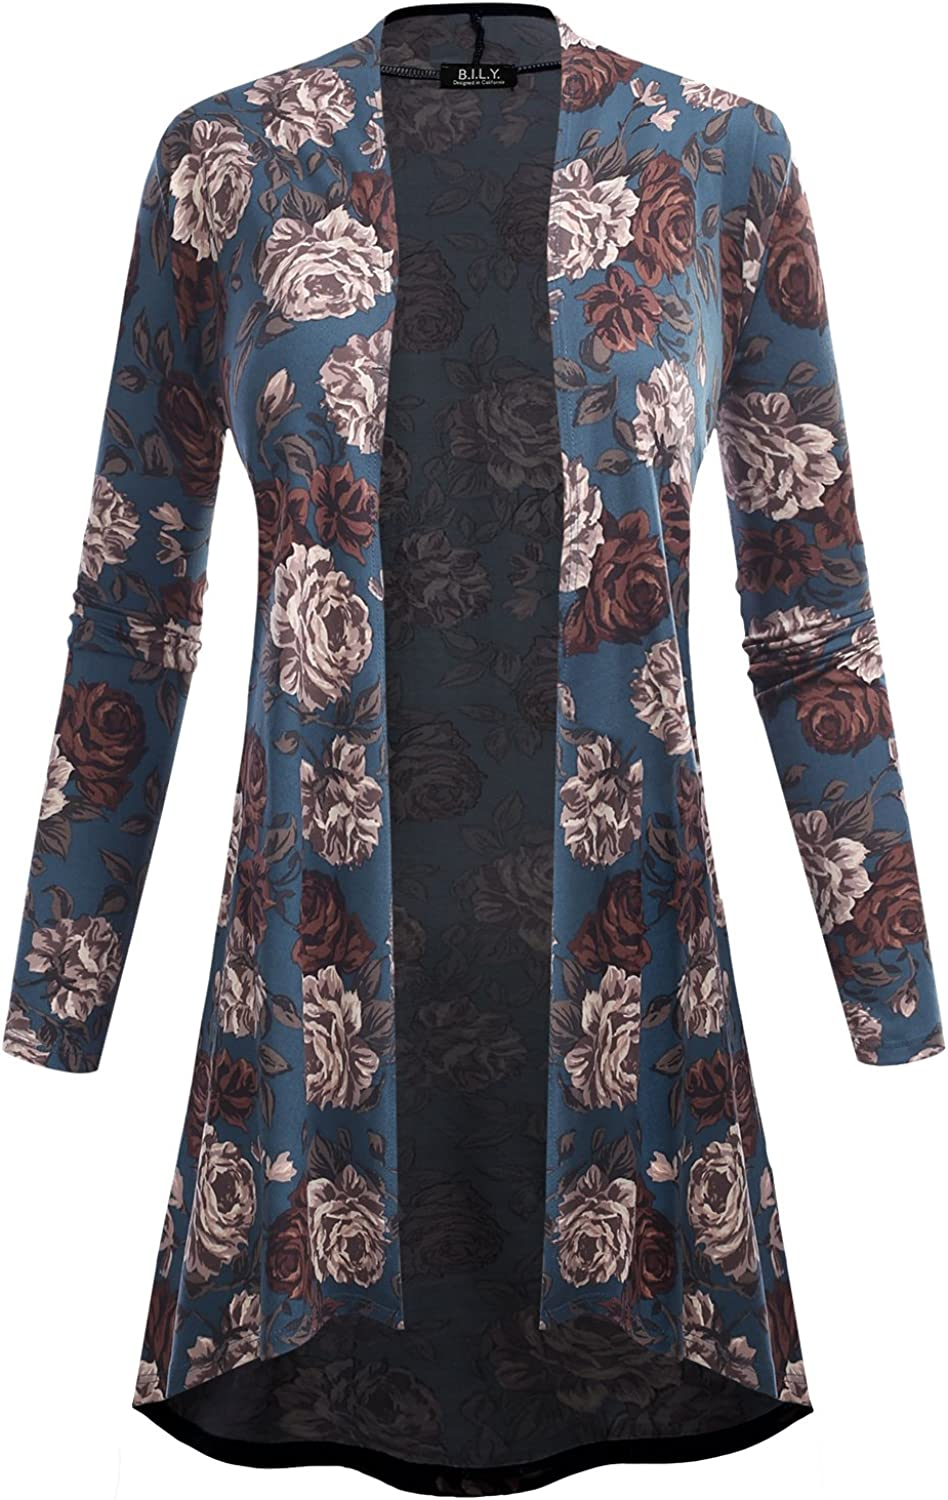 BH B.I.L.Y USA Womens Open Front High-Low Long Sleeve Floral Print Cardigan 61039 Teal Medium